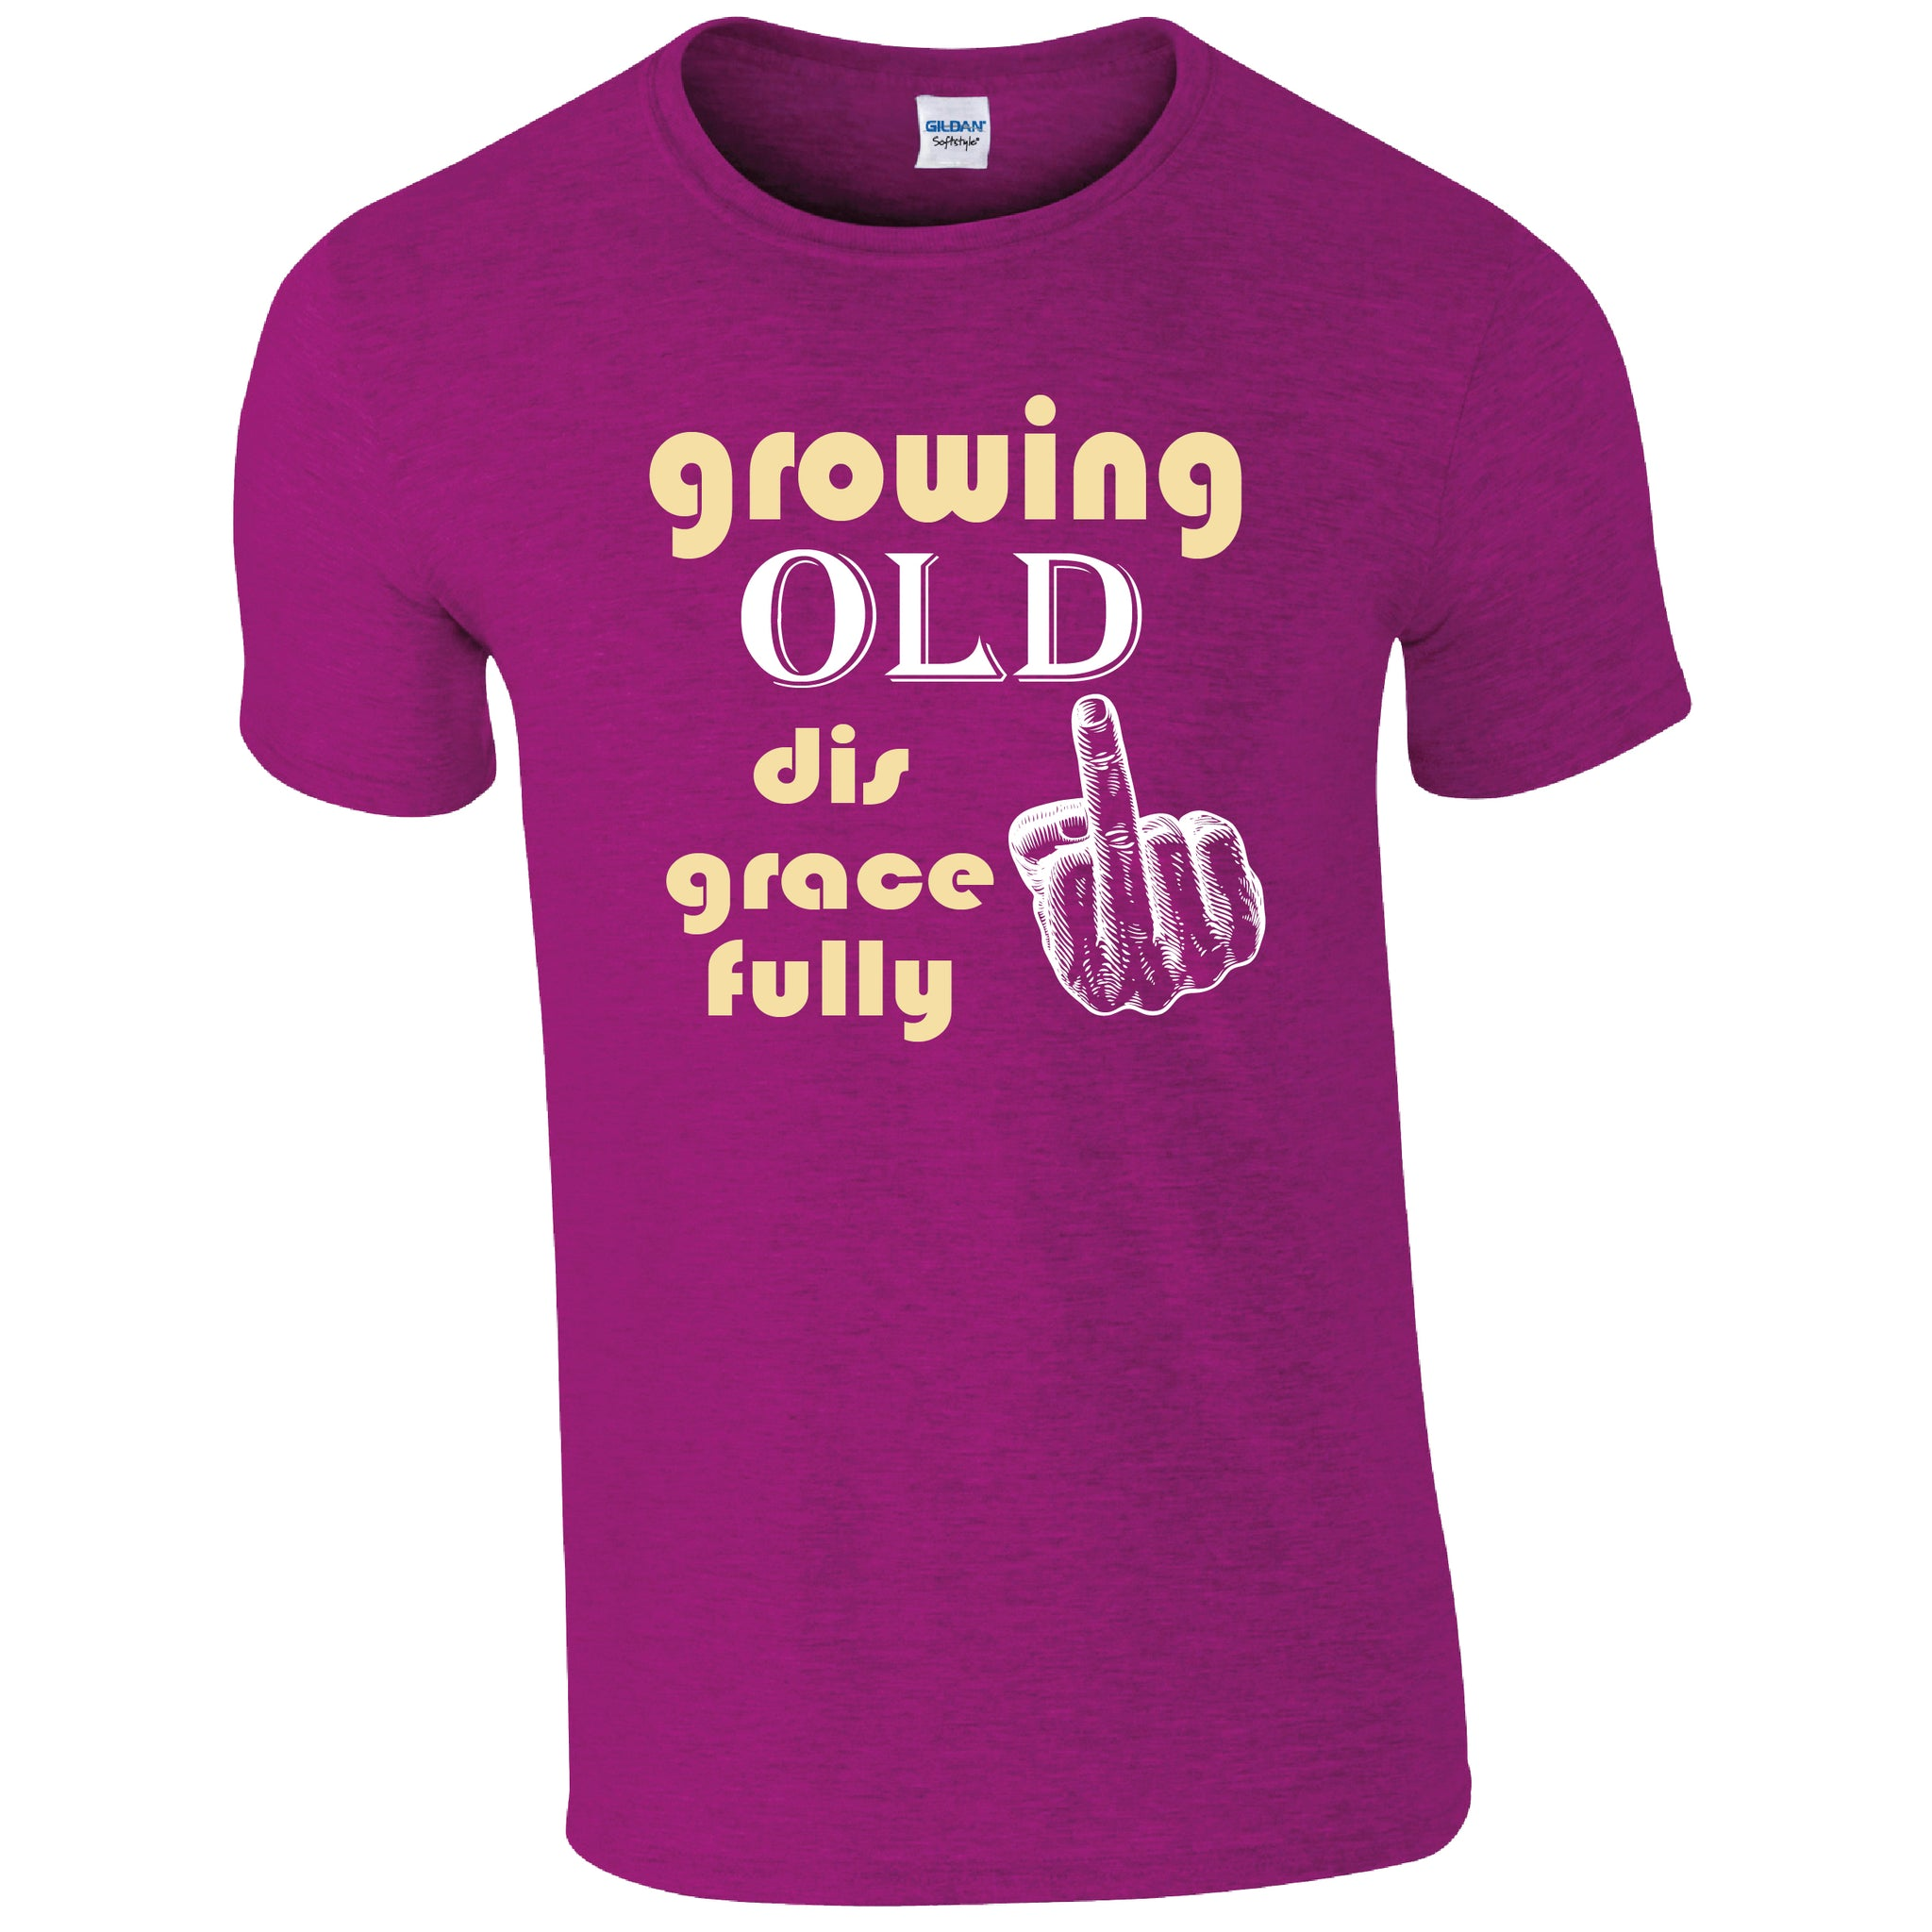 Growing Old Disgracefully!  Humour T-shirt